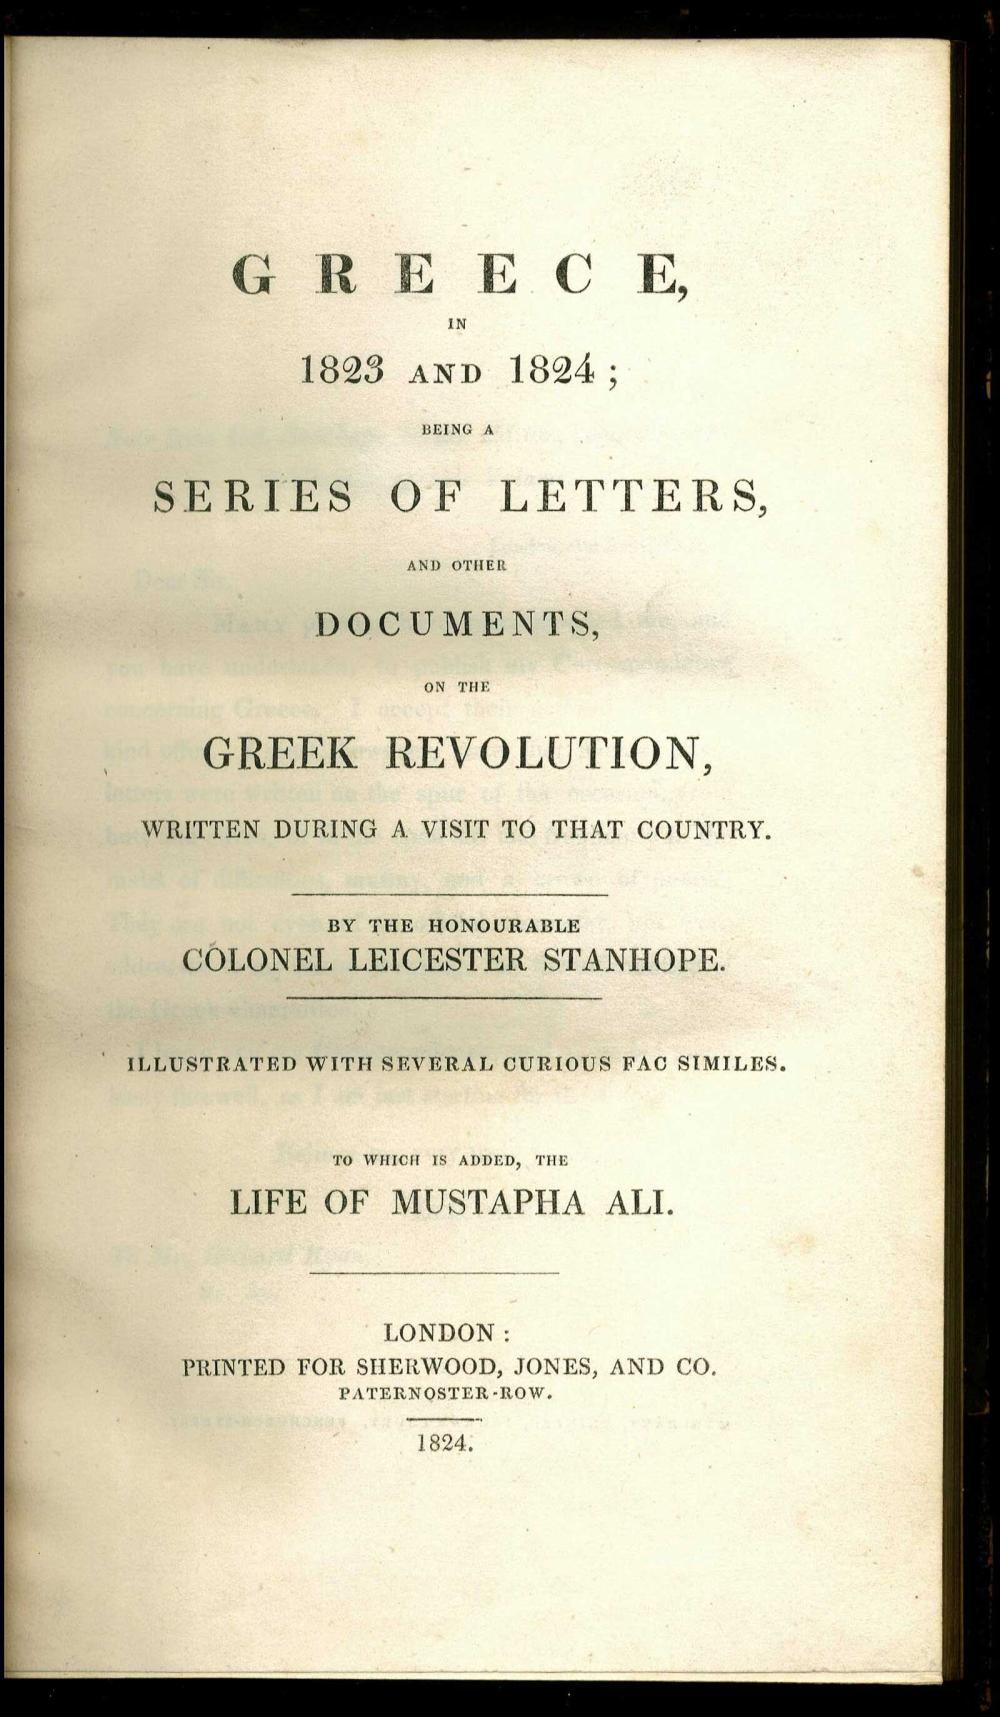 """STANHOPE Colonel Leicester, """"GREECE in 1823 and 1824: being a series of letters and other documents on the Greek... - Greece - PHILHELLENISM /"""